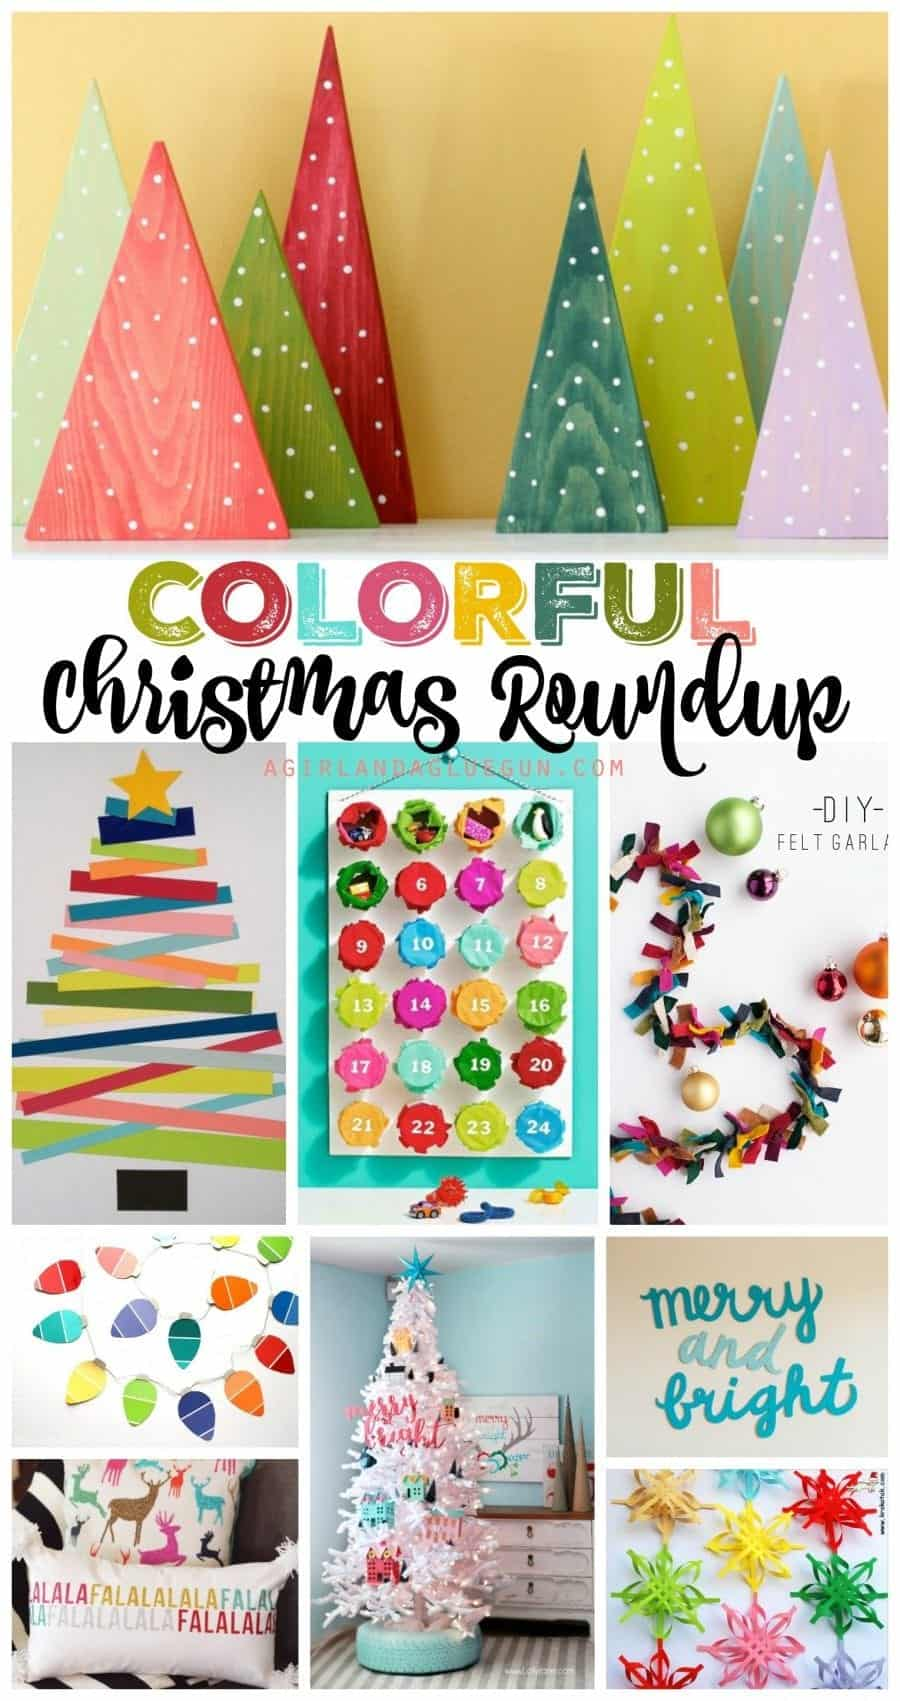 colorful-christmas-roundup-tons-of-fun-projects-with-loads-of-great-colors-a-girl-and-a-glue-gun-900x1701